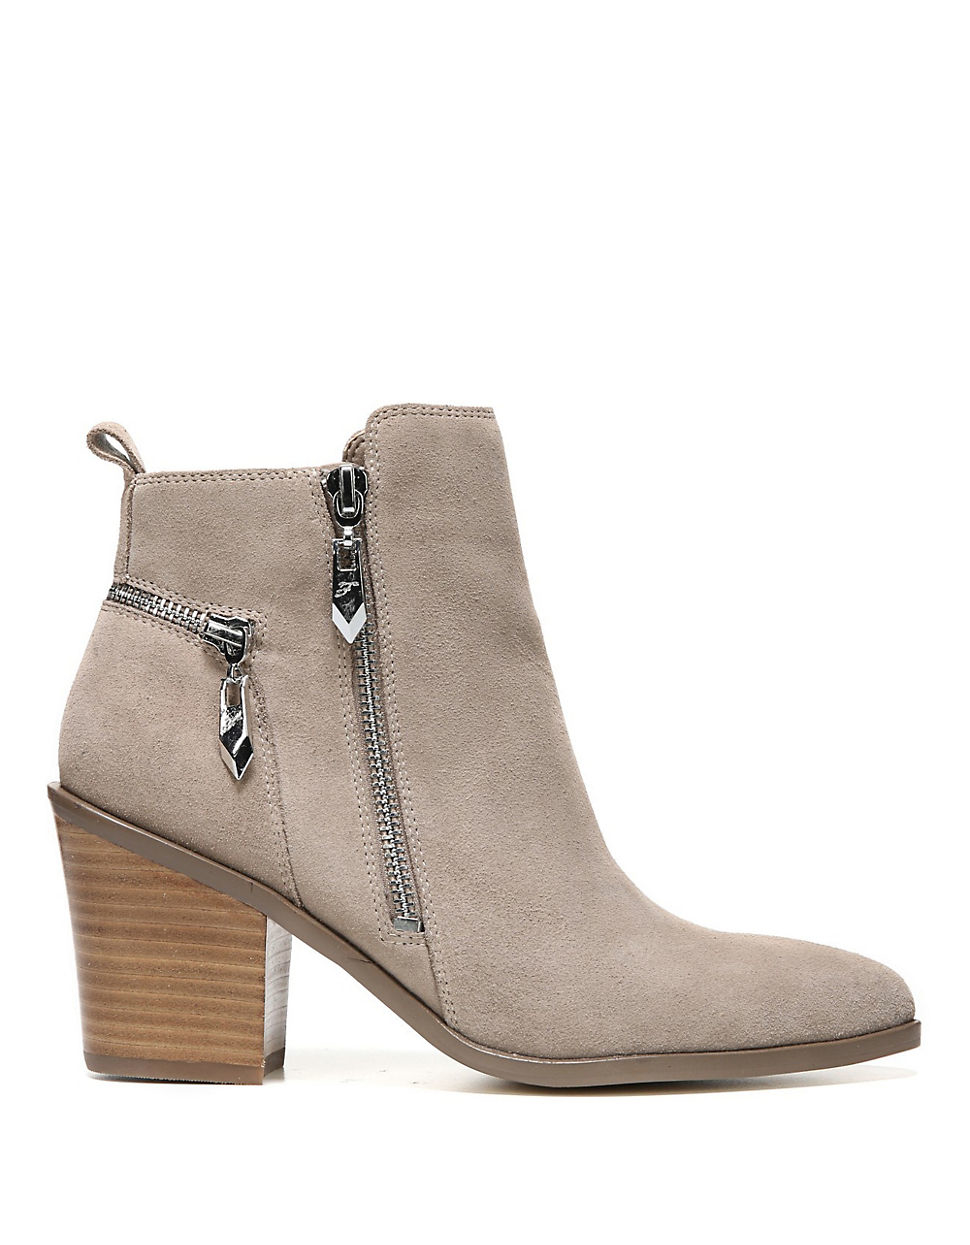 Fergie Bianca Suede Ankle Boots in Black - Lyst Fergie Shoes